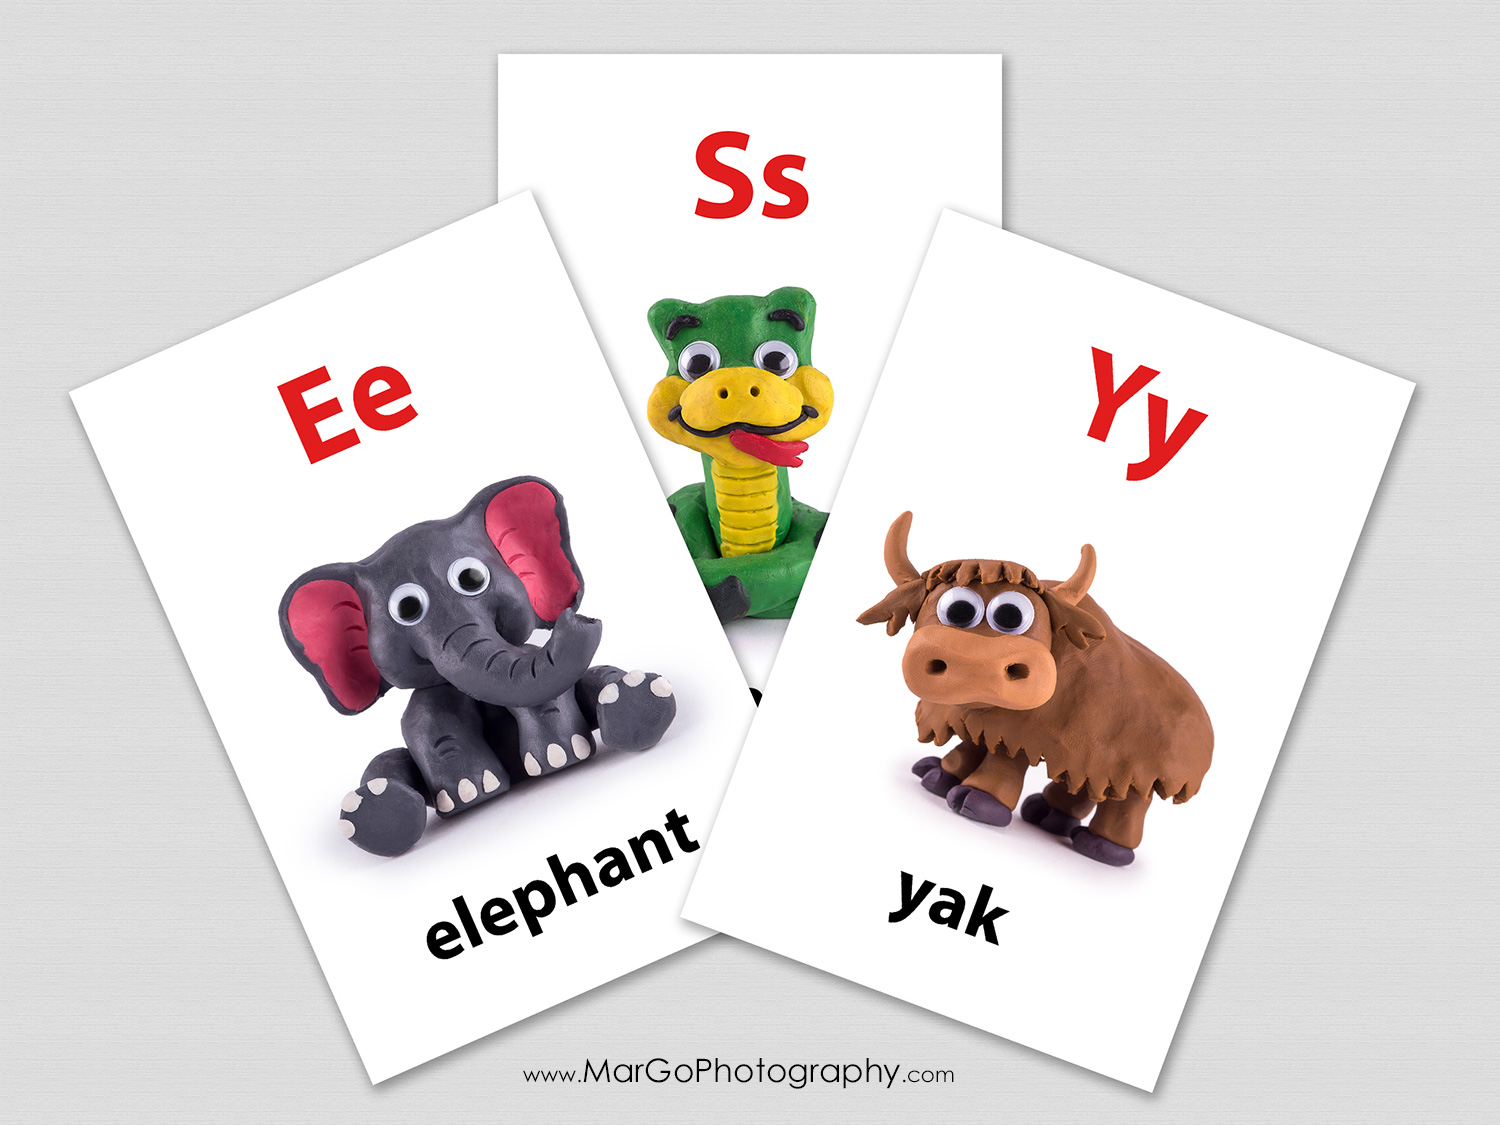 Bela's Kids English flashcards with clay animals